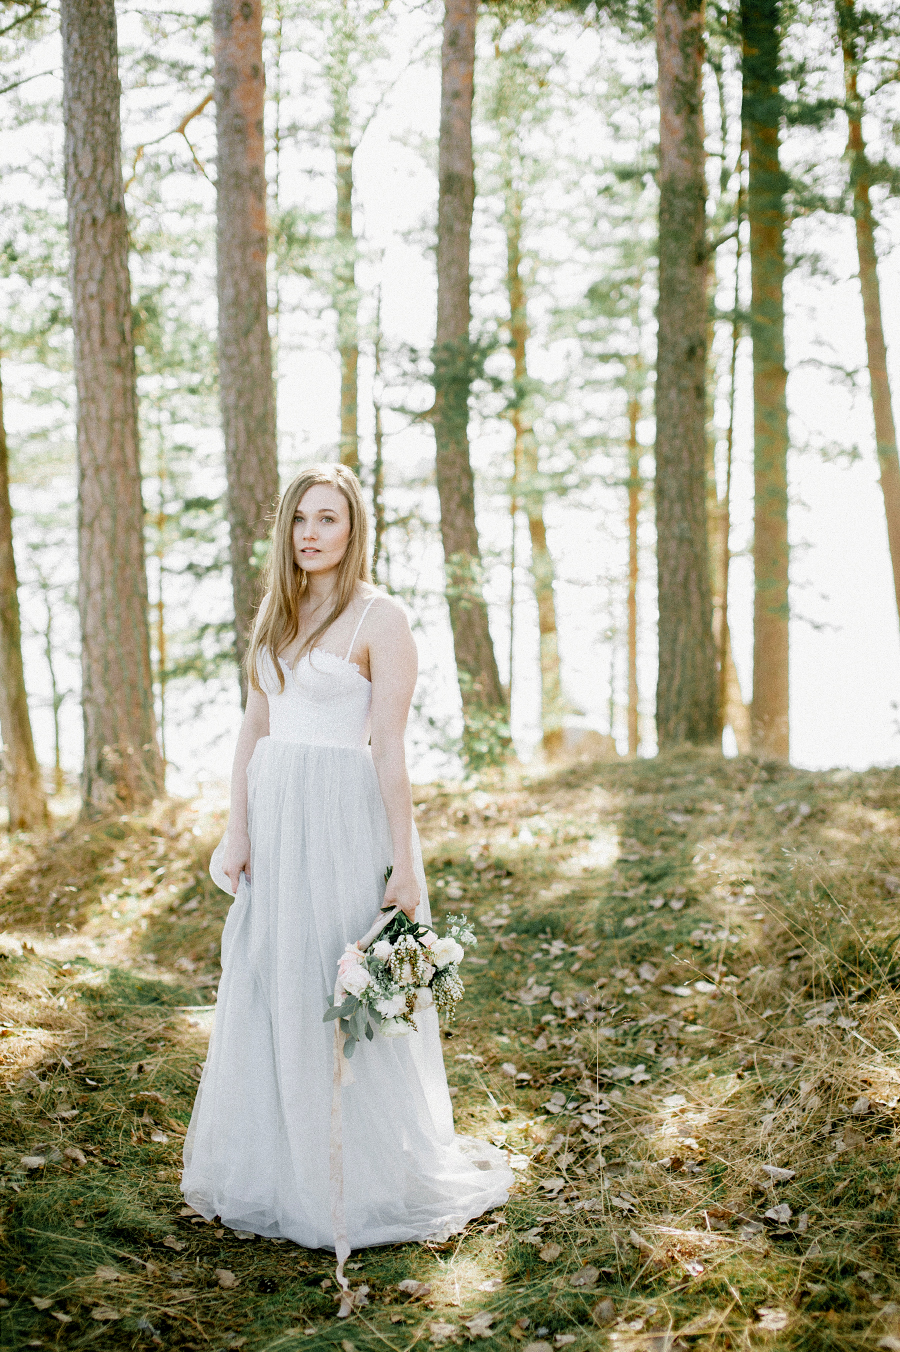 Ethereal romantic before the wedding -session